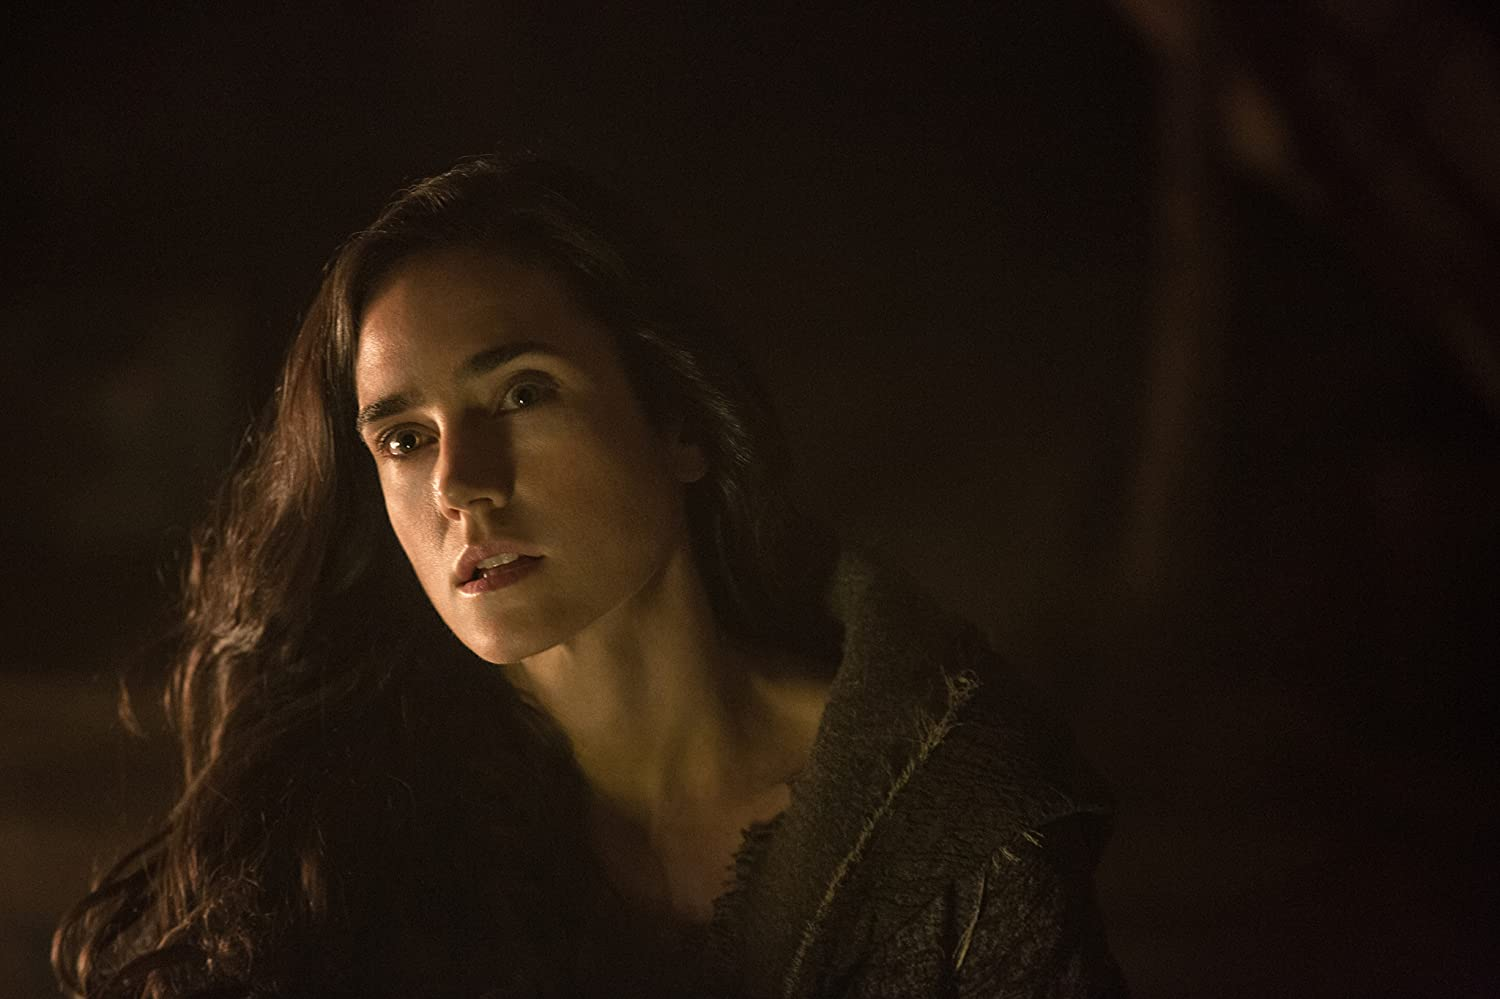 Jennifer Connelly in Noah (2014)